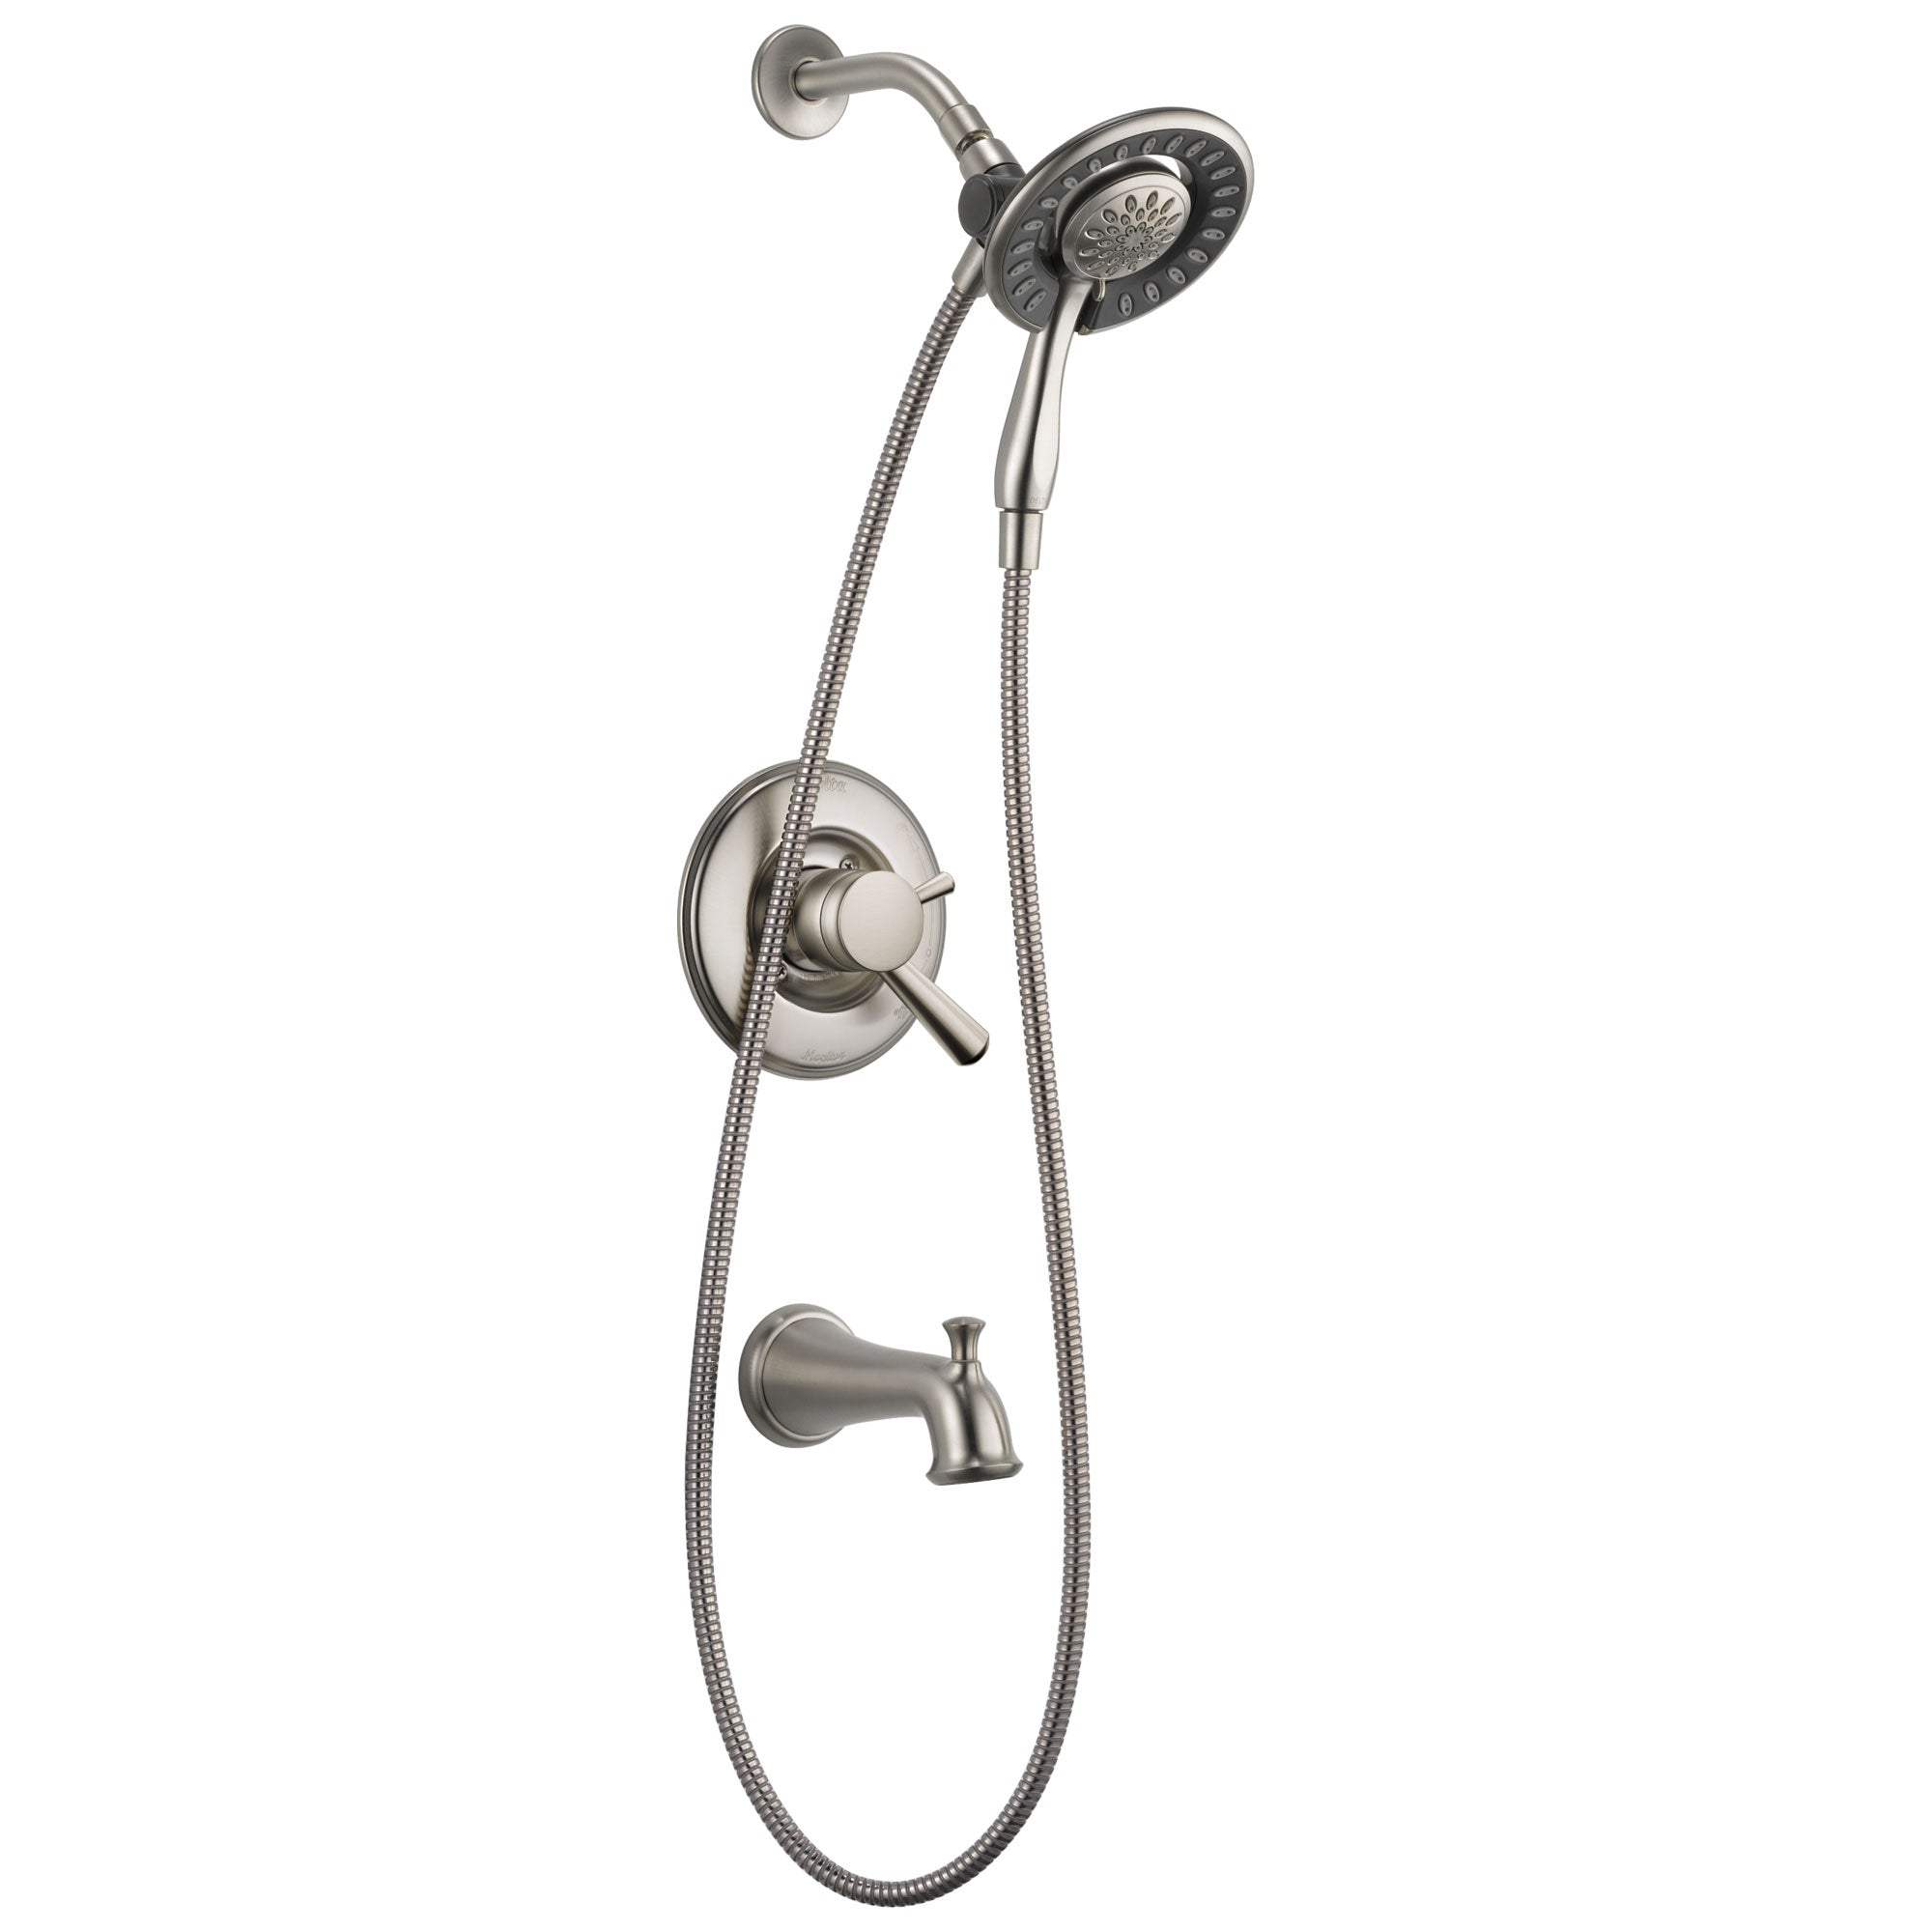 Delta Linden Collection Stainless Steel Finish Dual Control Tub and Shower Faucet with Hand Spray / Showerhead Combo Includes Rough Valve with Stops D2284V